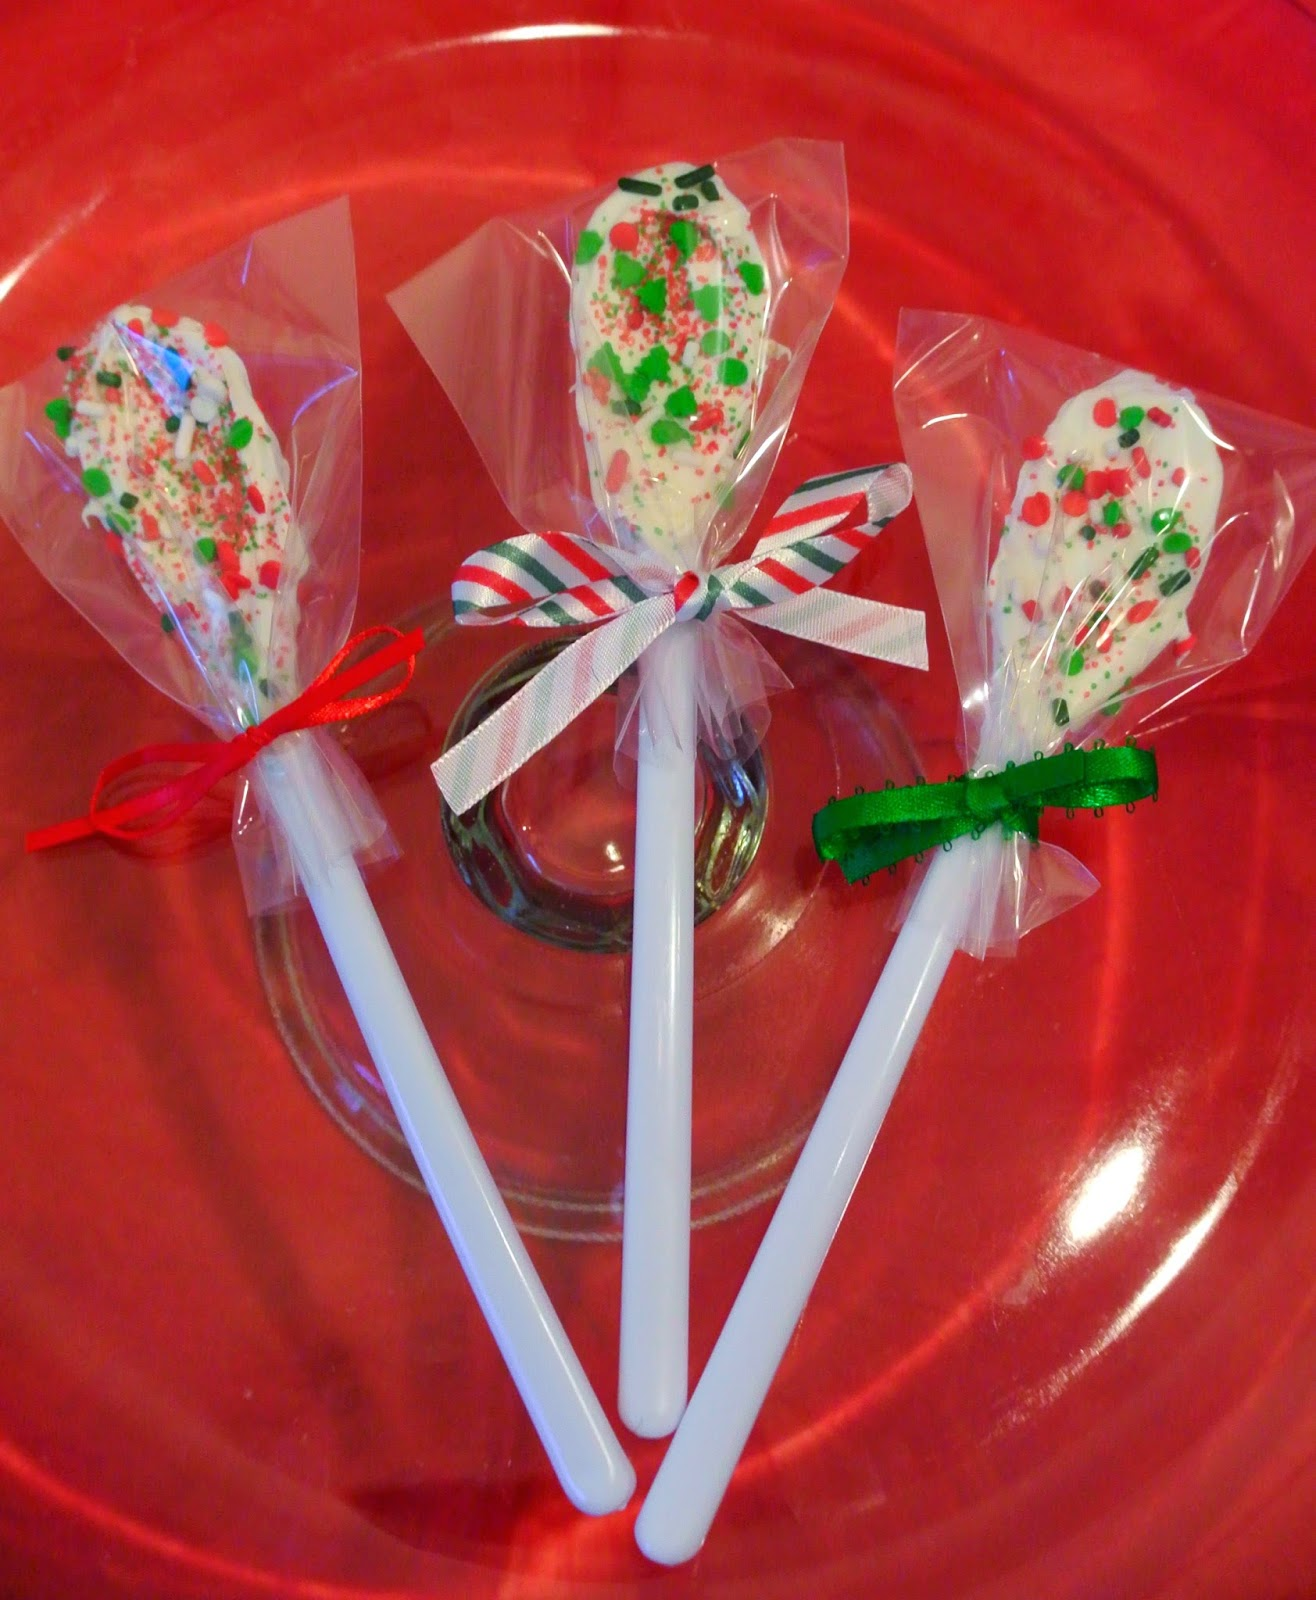 Hot cocoa stirrers, chocolate spoons